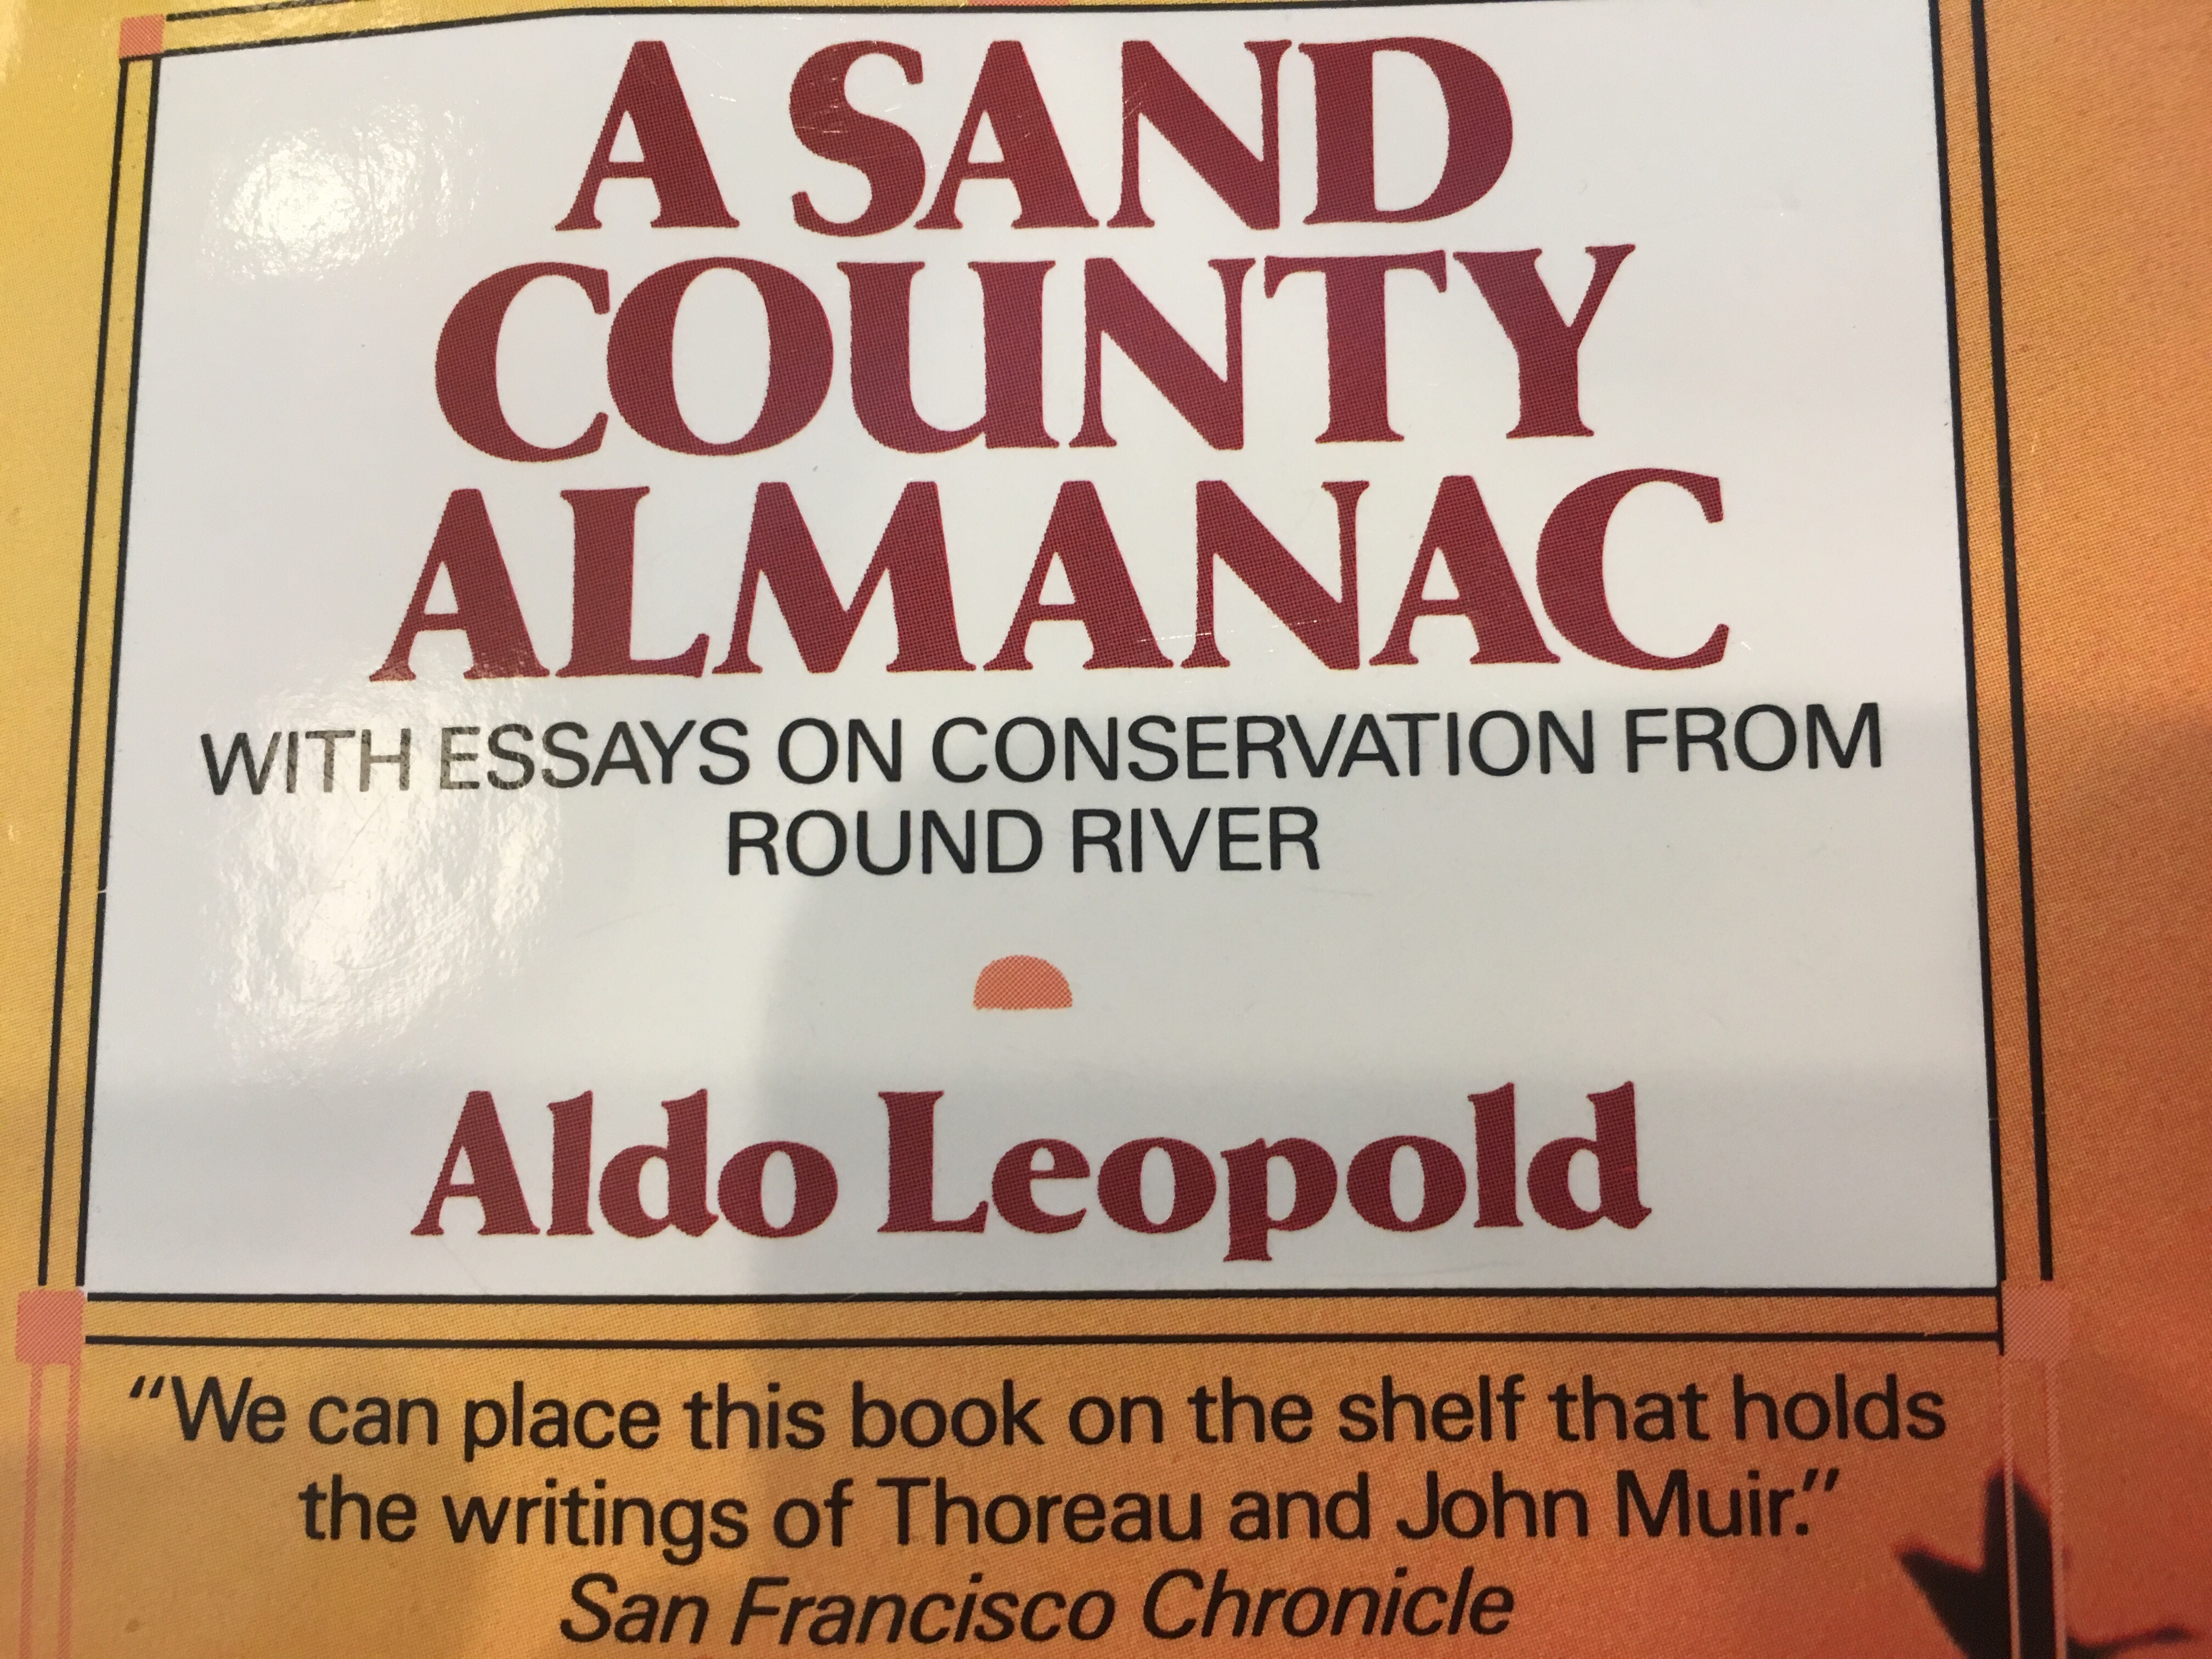 a sand county almanac outdoor essays and reflections Synnopsis : [ by leopold, aldo ( author ) a sand county almanac: with essays on conservation from round river dec-12-1986 mass market 5 clik here to download book [recommendation] sand county almanac (outdoor essays reflections) by aldo leopold free.